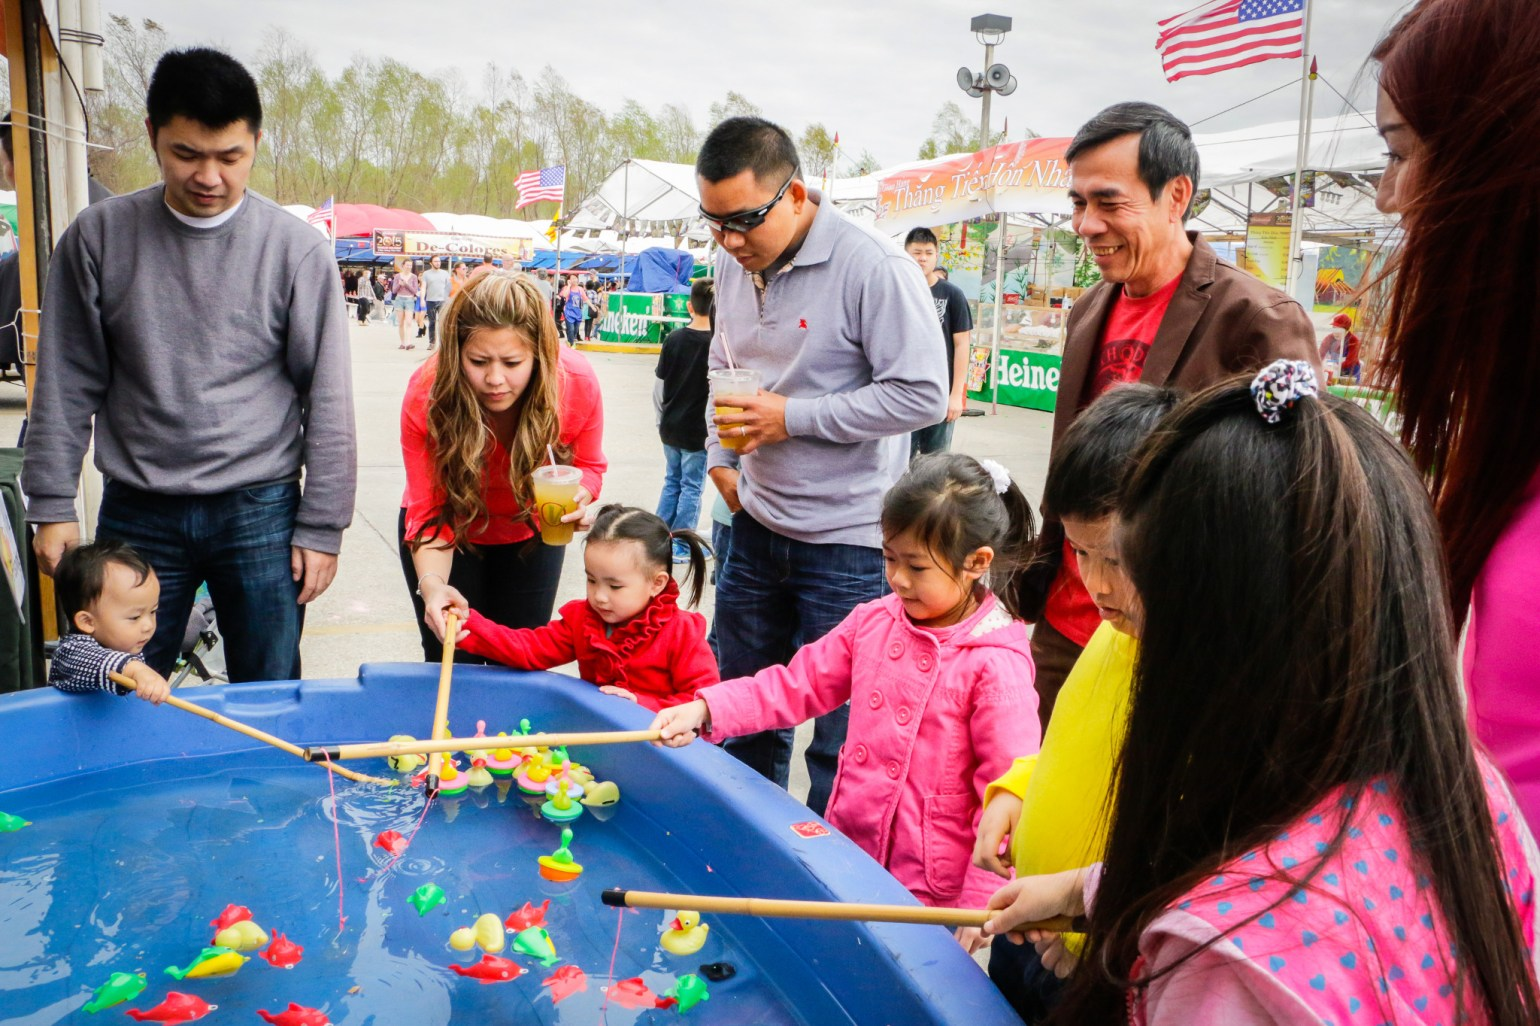 Tet Fest celebrates the Lunar New Year this weekend. (Photo: Rebecca Ratliff)